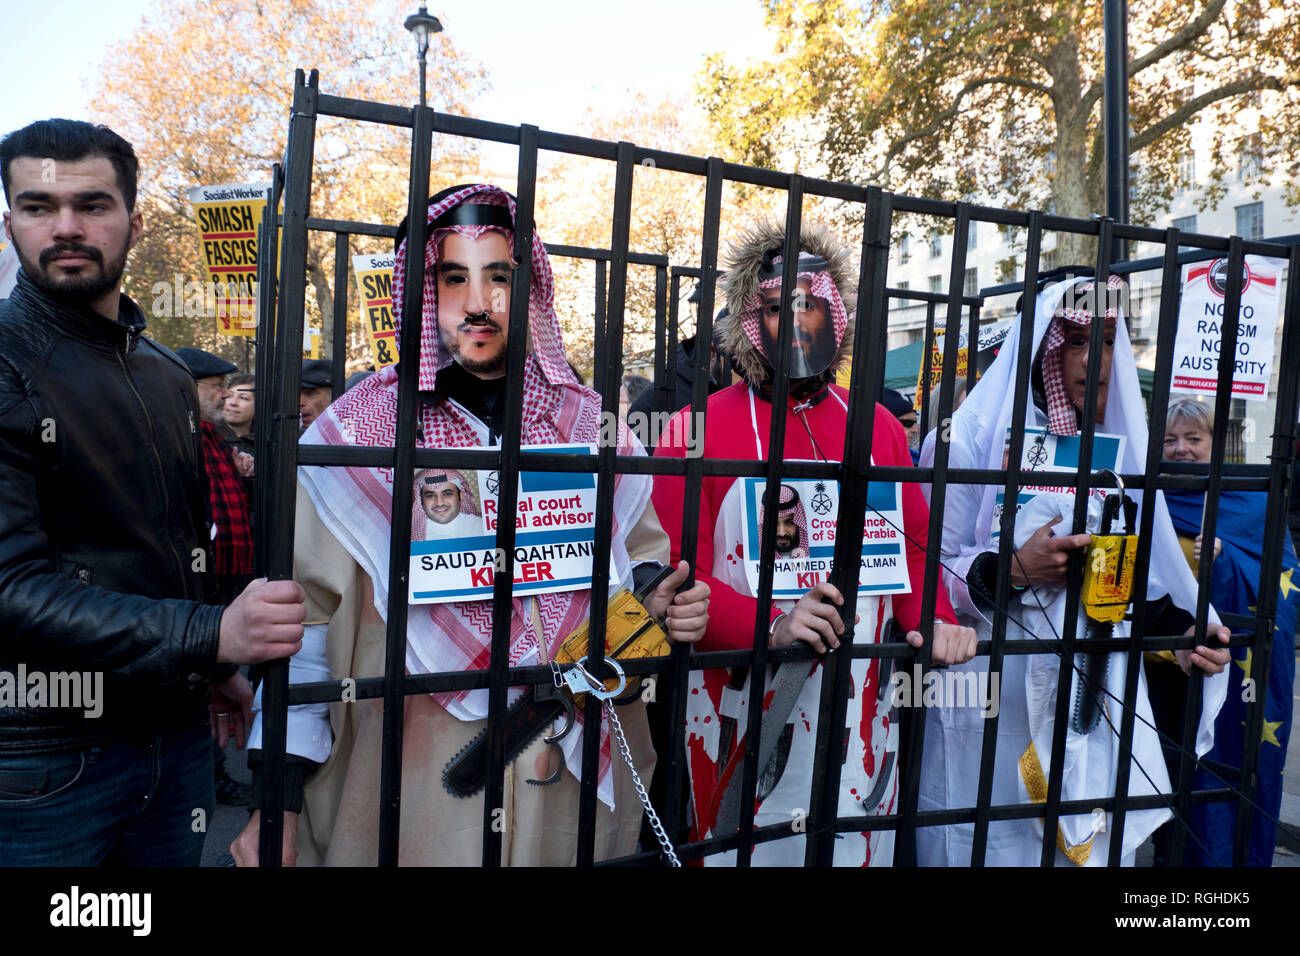 Following killing US Saudi journalist Jamal Khashoggi in Turkey, demonstrators came dressed as Saudi officials, including Saudi Crown Prince Mohammad bin Salman, inside a fake prison cell . - Stock Image